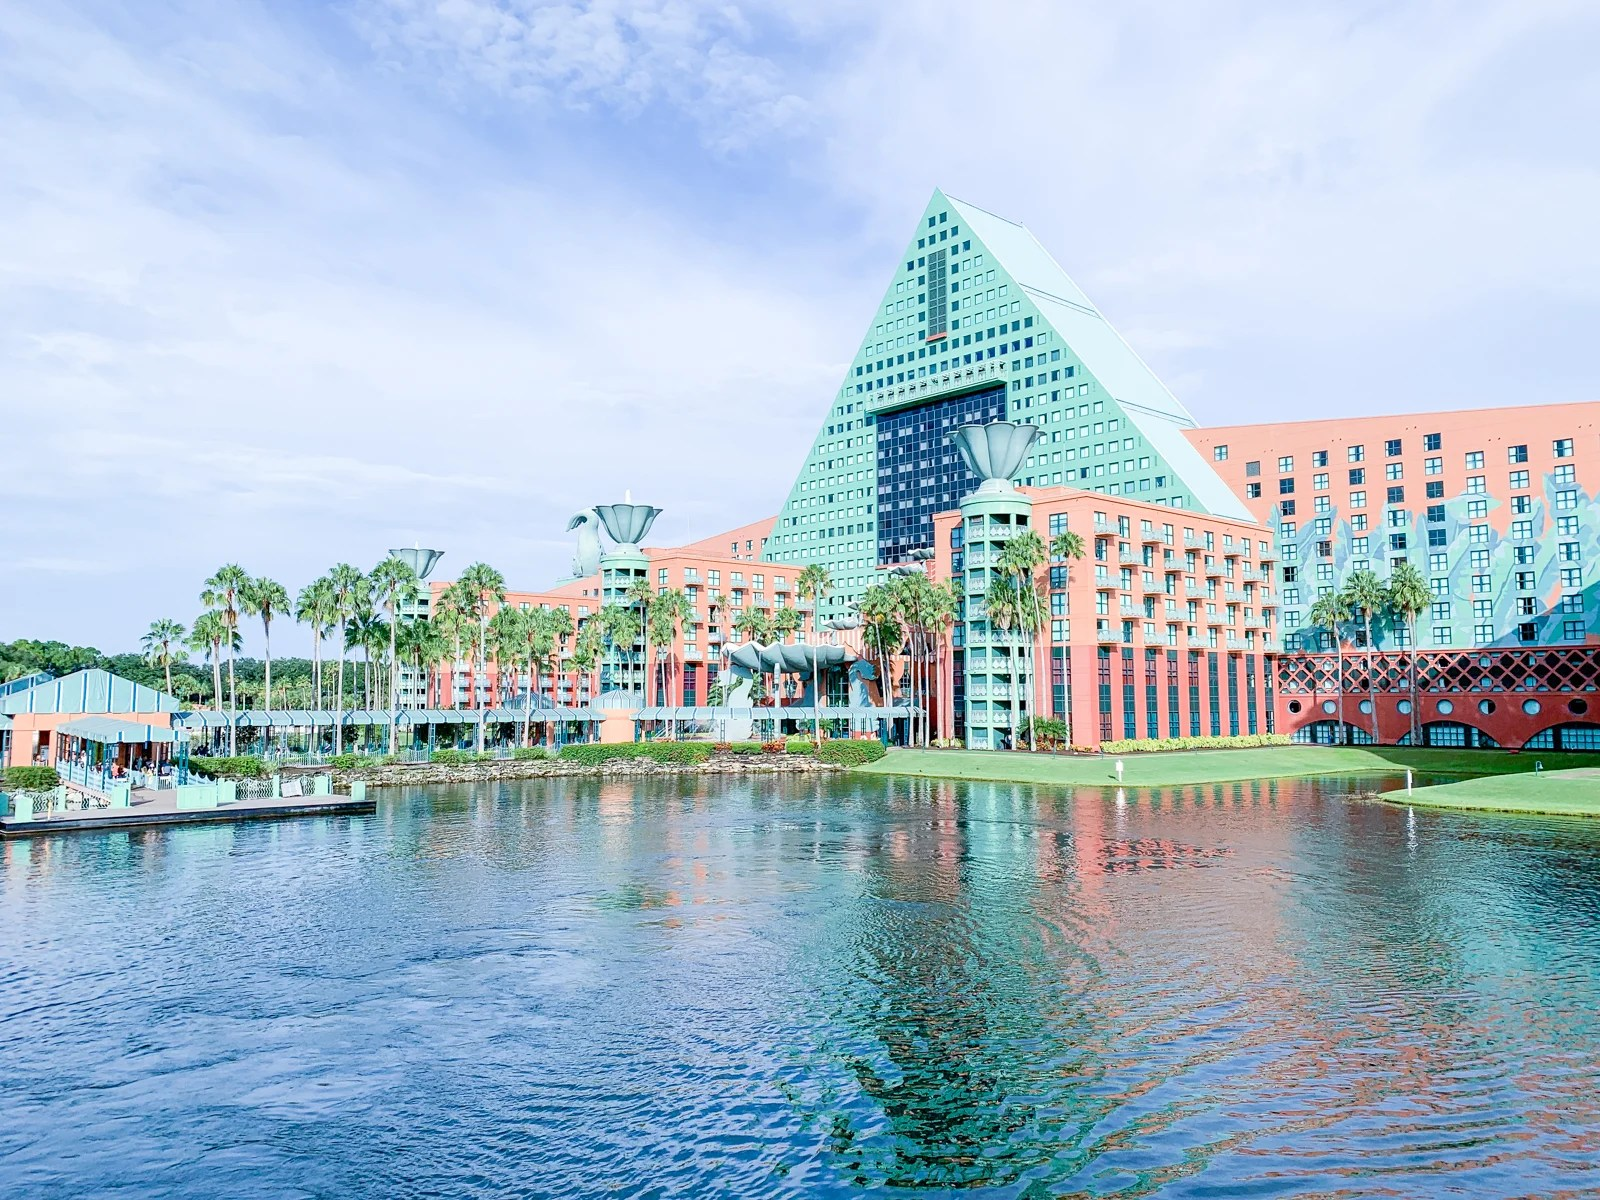 Comparing Marriott's Swan and Dolphin Walt Disney World Resorts